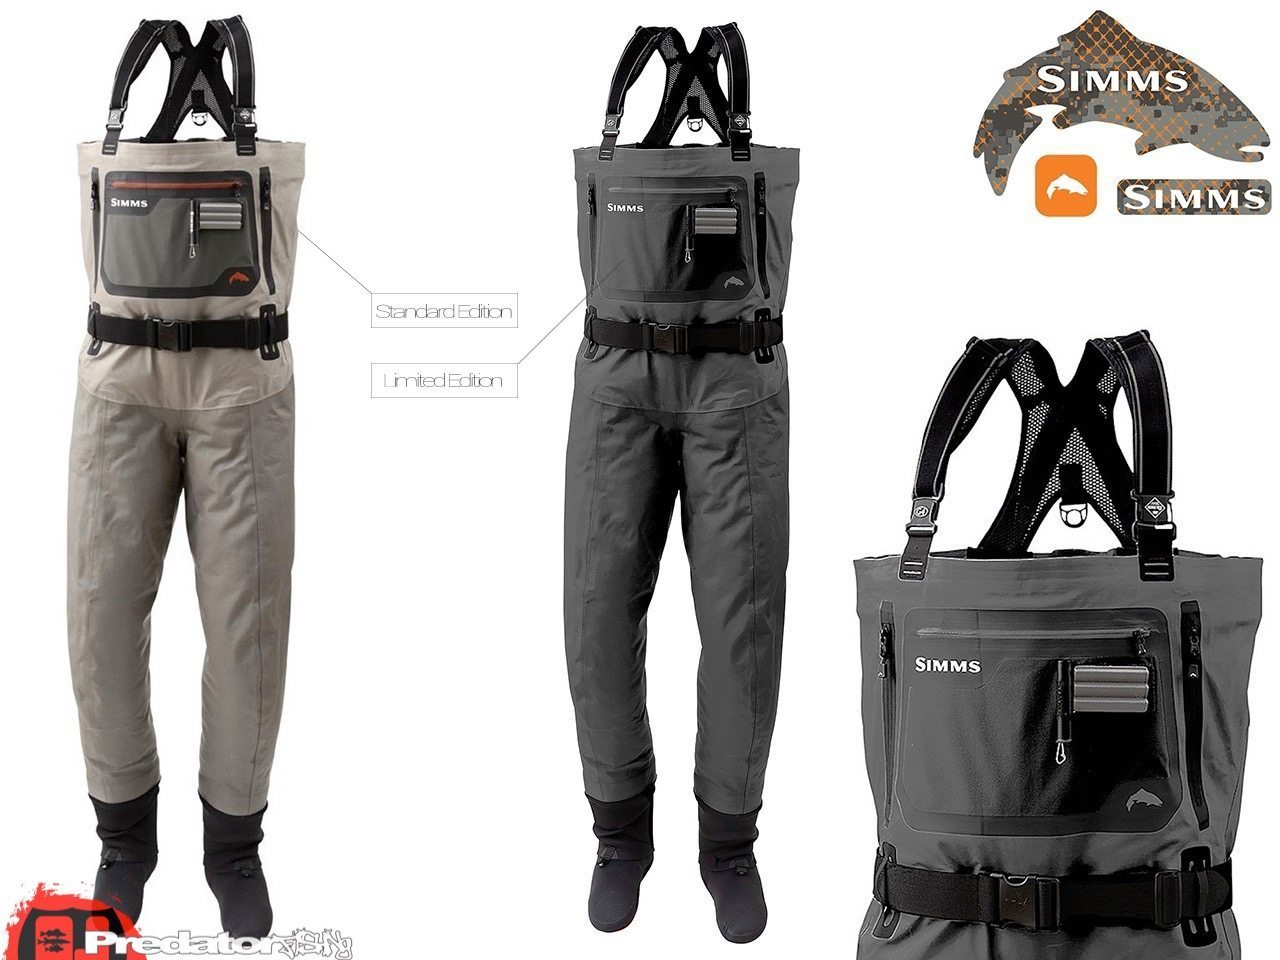 SIMMS G4X PRO LIMITED EDITION GUIDE WADERS | ☆ predator.fishing ☆